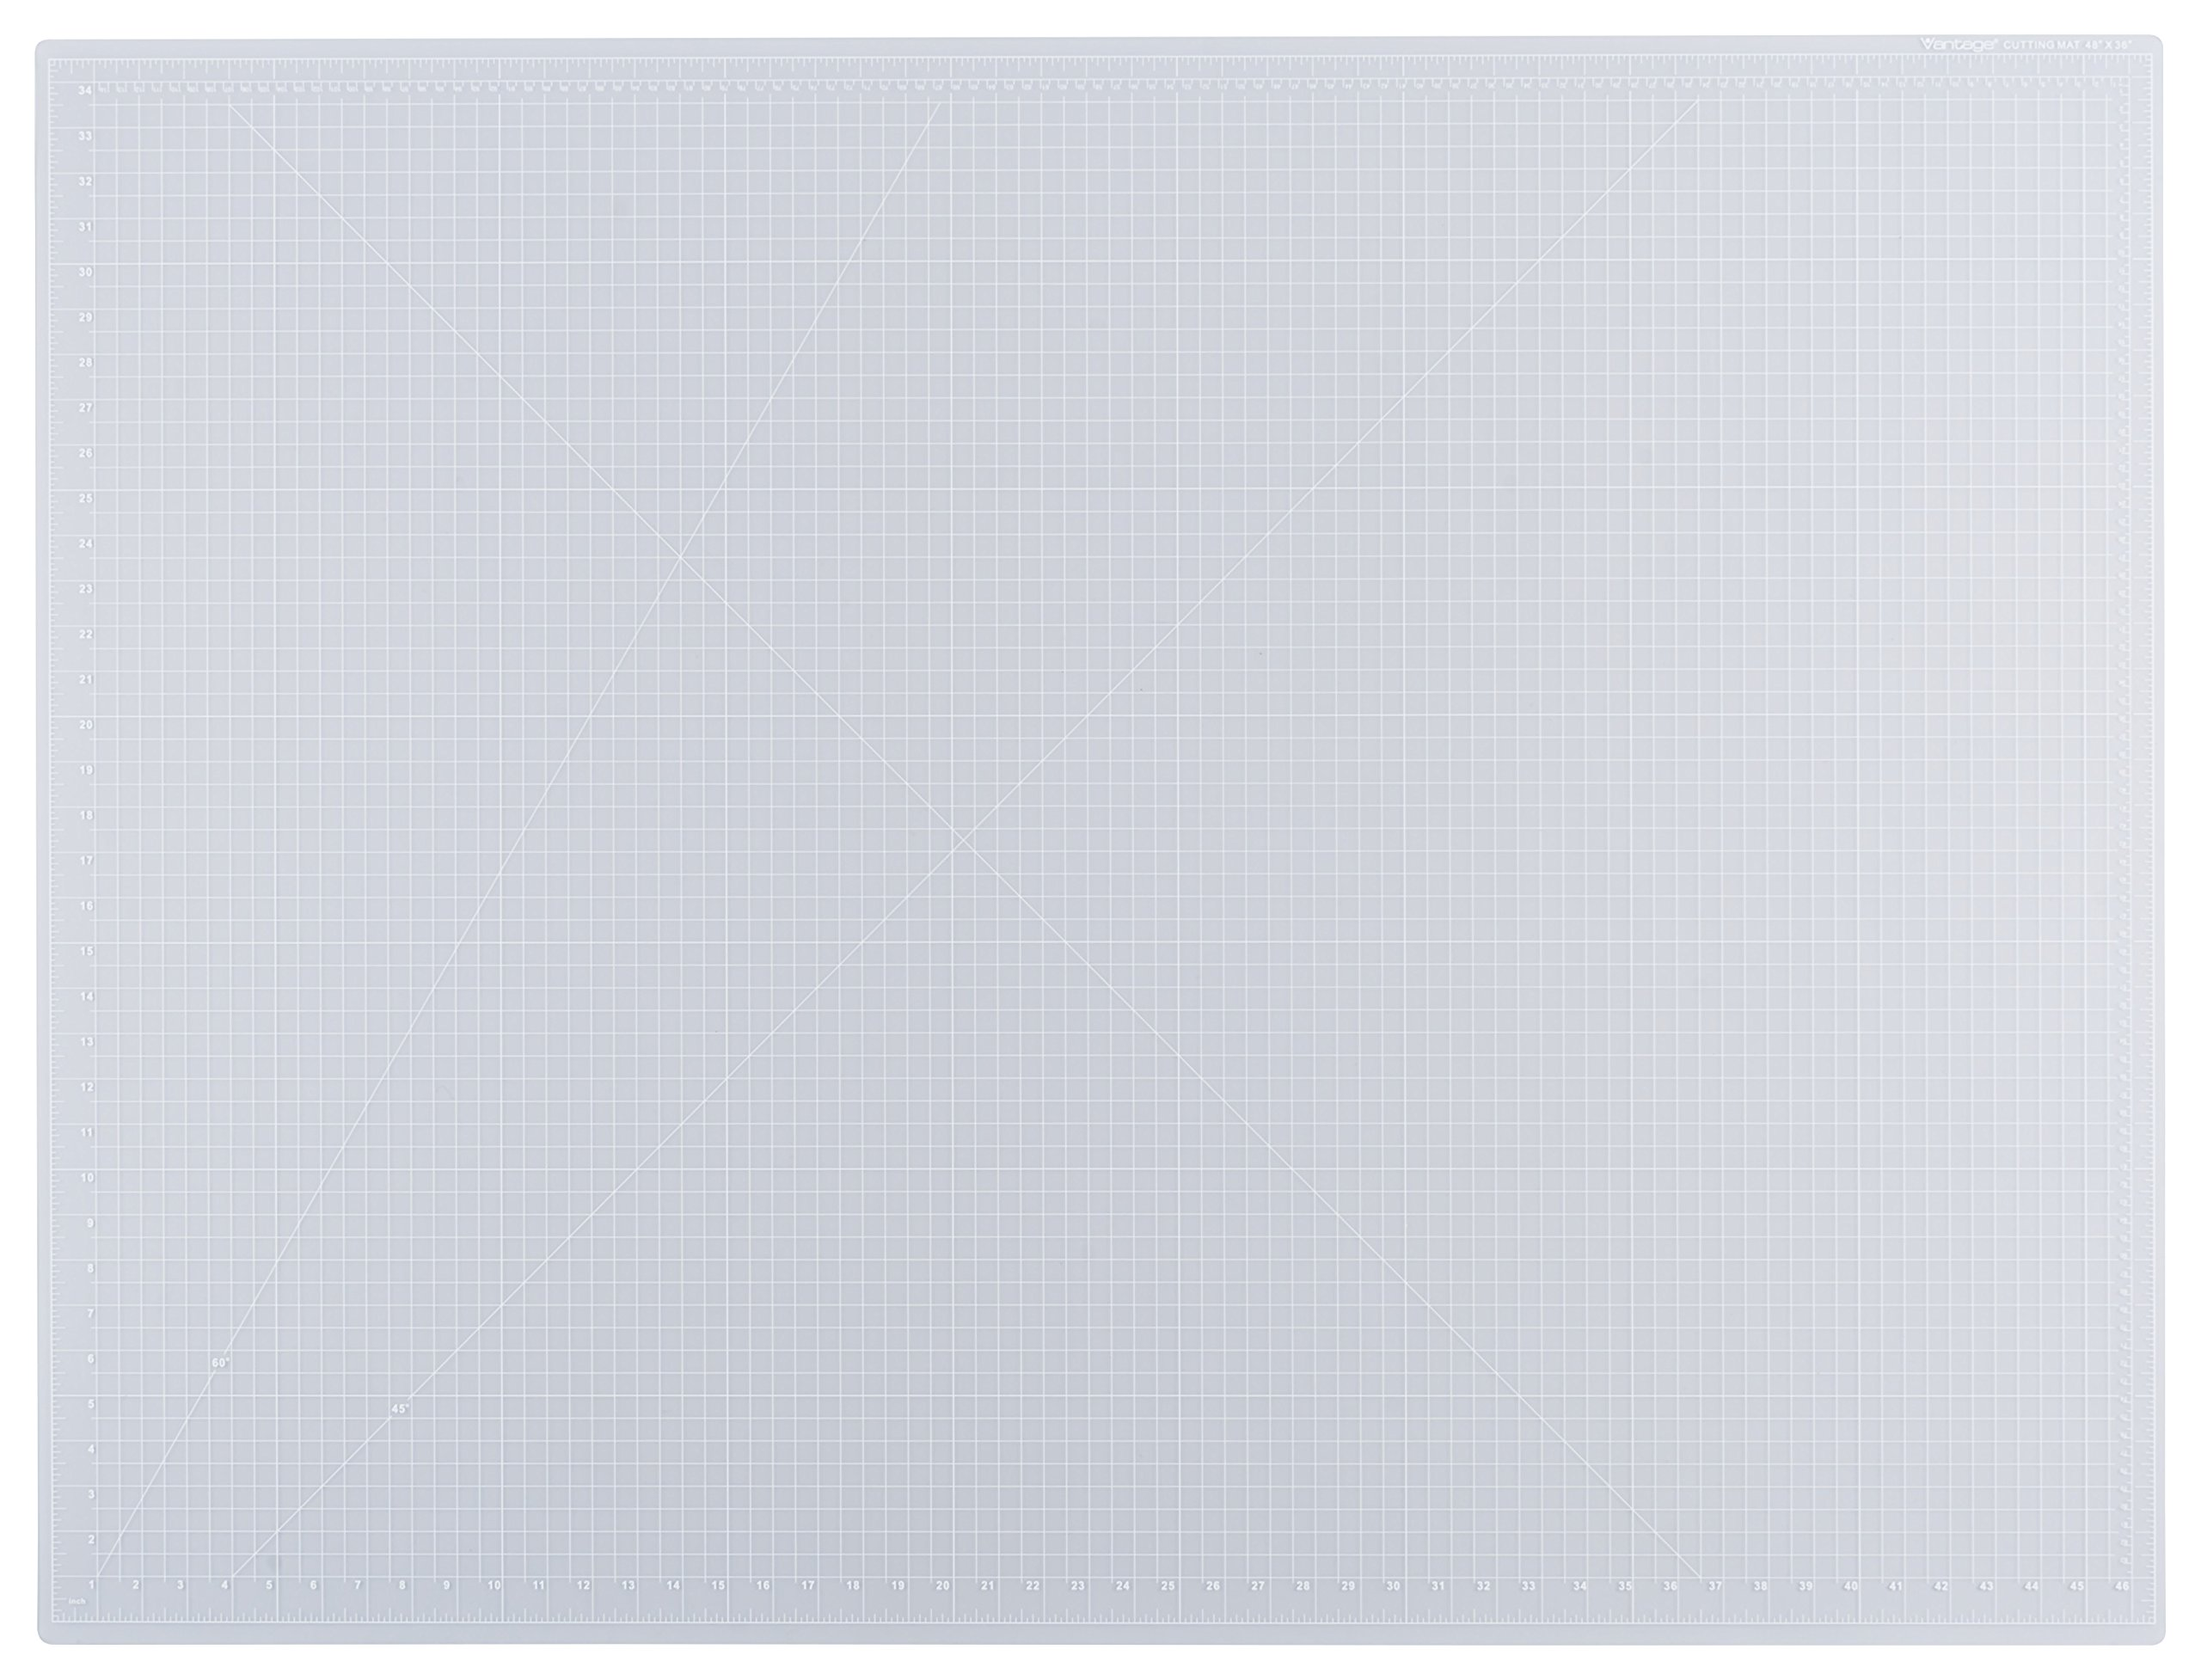 Dahle Vantage 10684 Self-Healing 5-Layer Cutting Mat Perfect for Crafts and Sewing 36'' x 48 Clear Mat